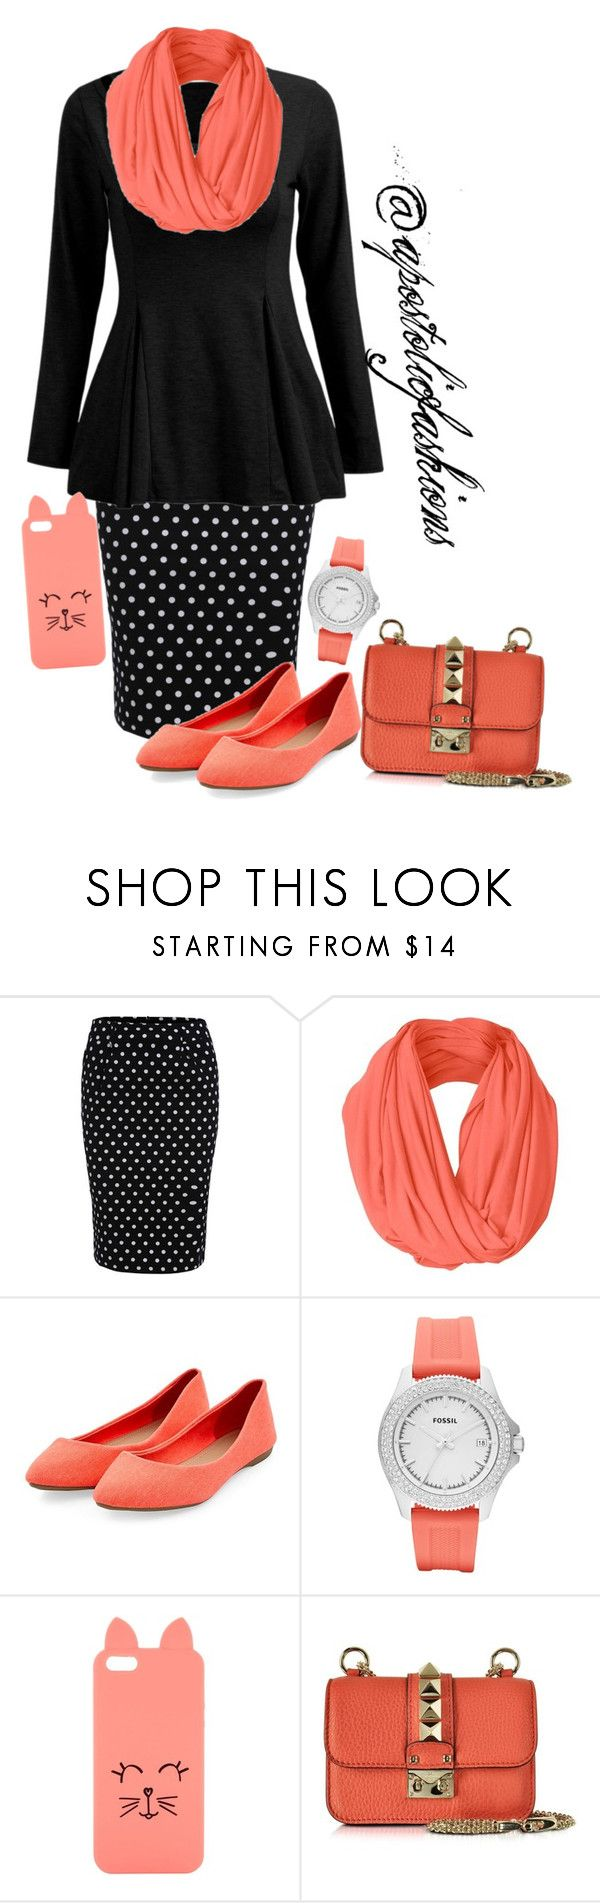 """Apostolic Fashions #1274"" by apostolicfashions on Polyvore featuring FOSSIL, H! by Henry Holland and Valentino"